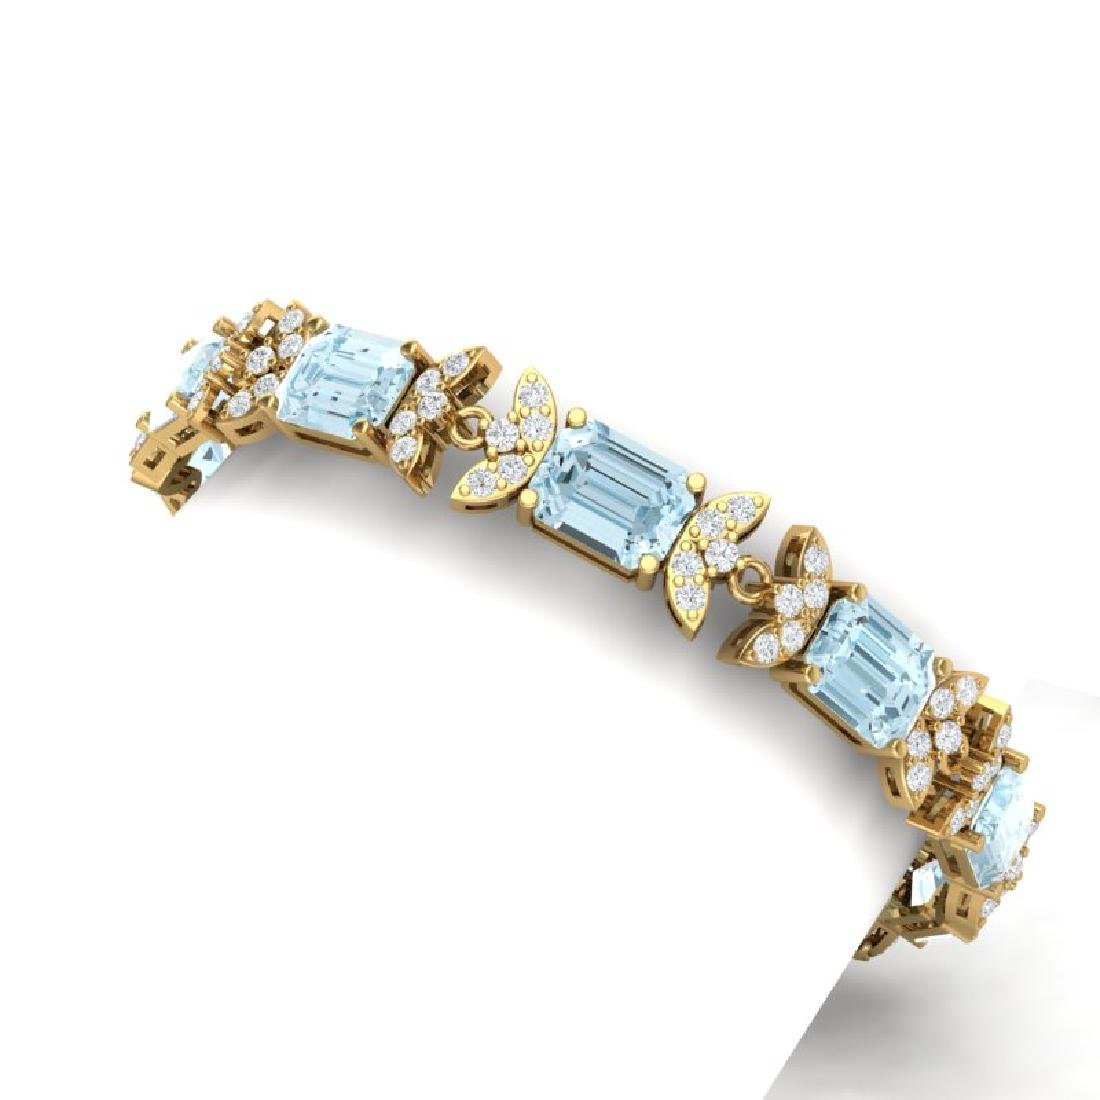 39.65 CTW Royalty Sky Topaz & VS Diamond Bracelet 18K - 2